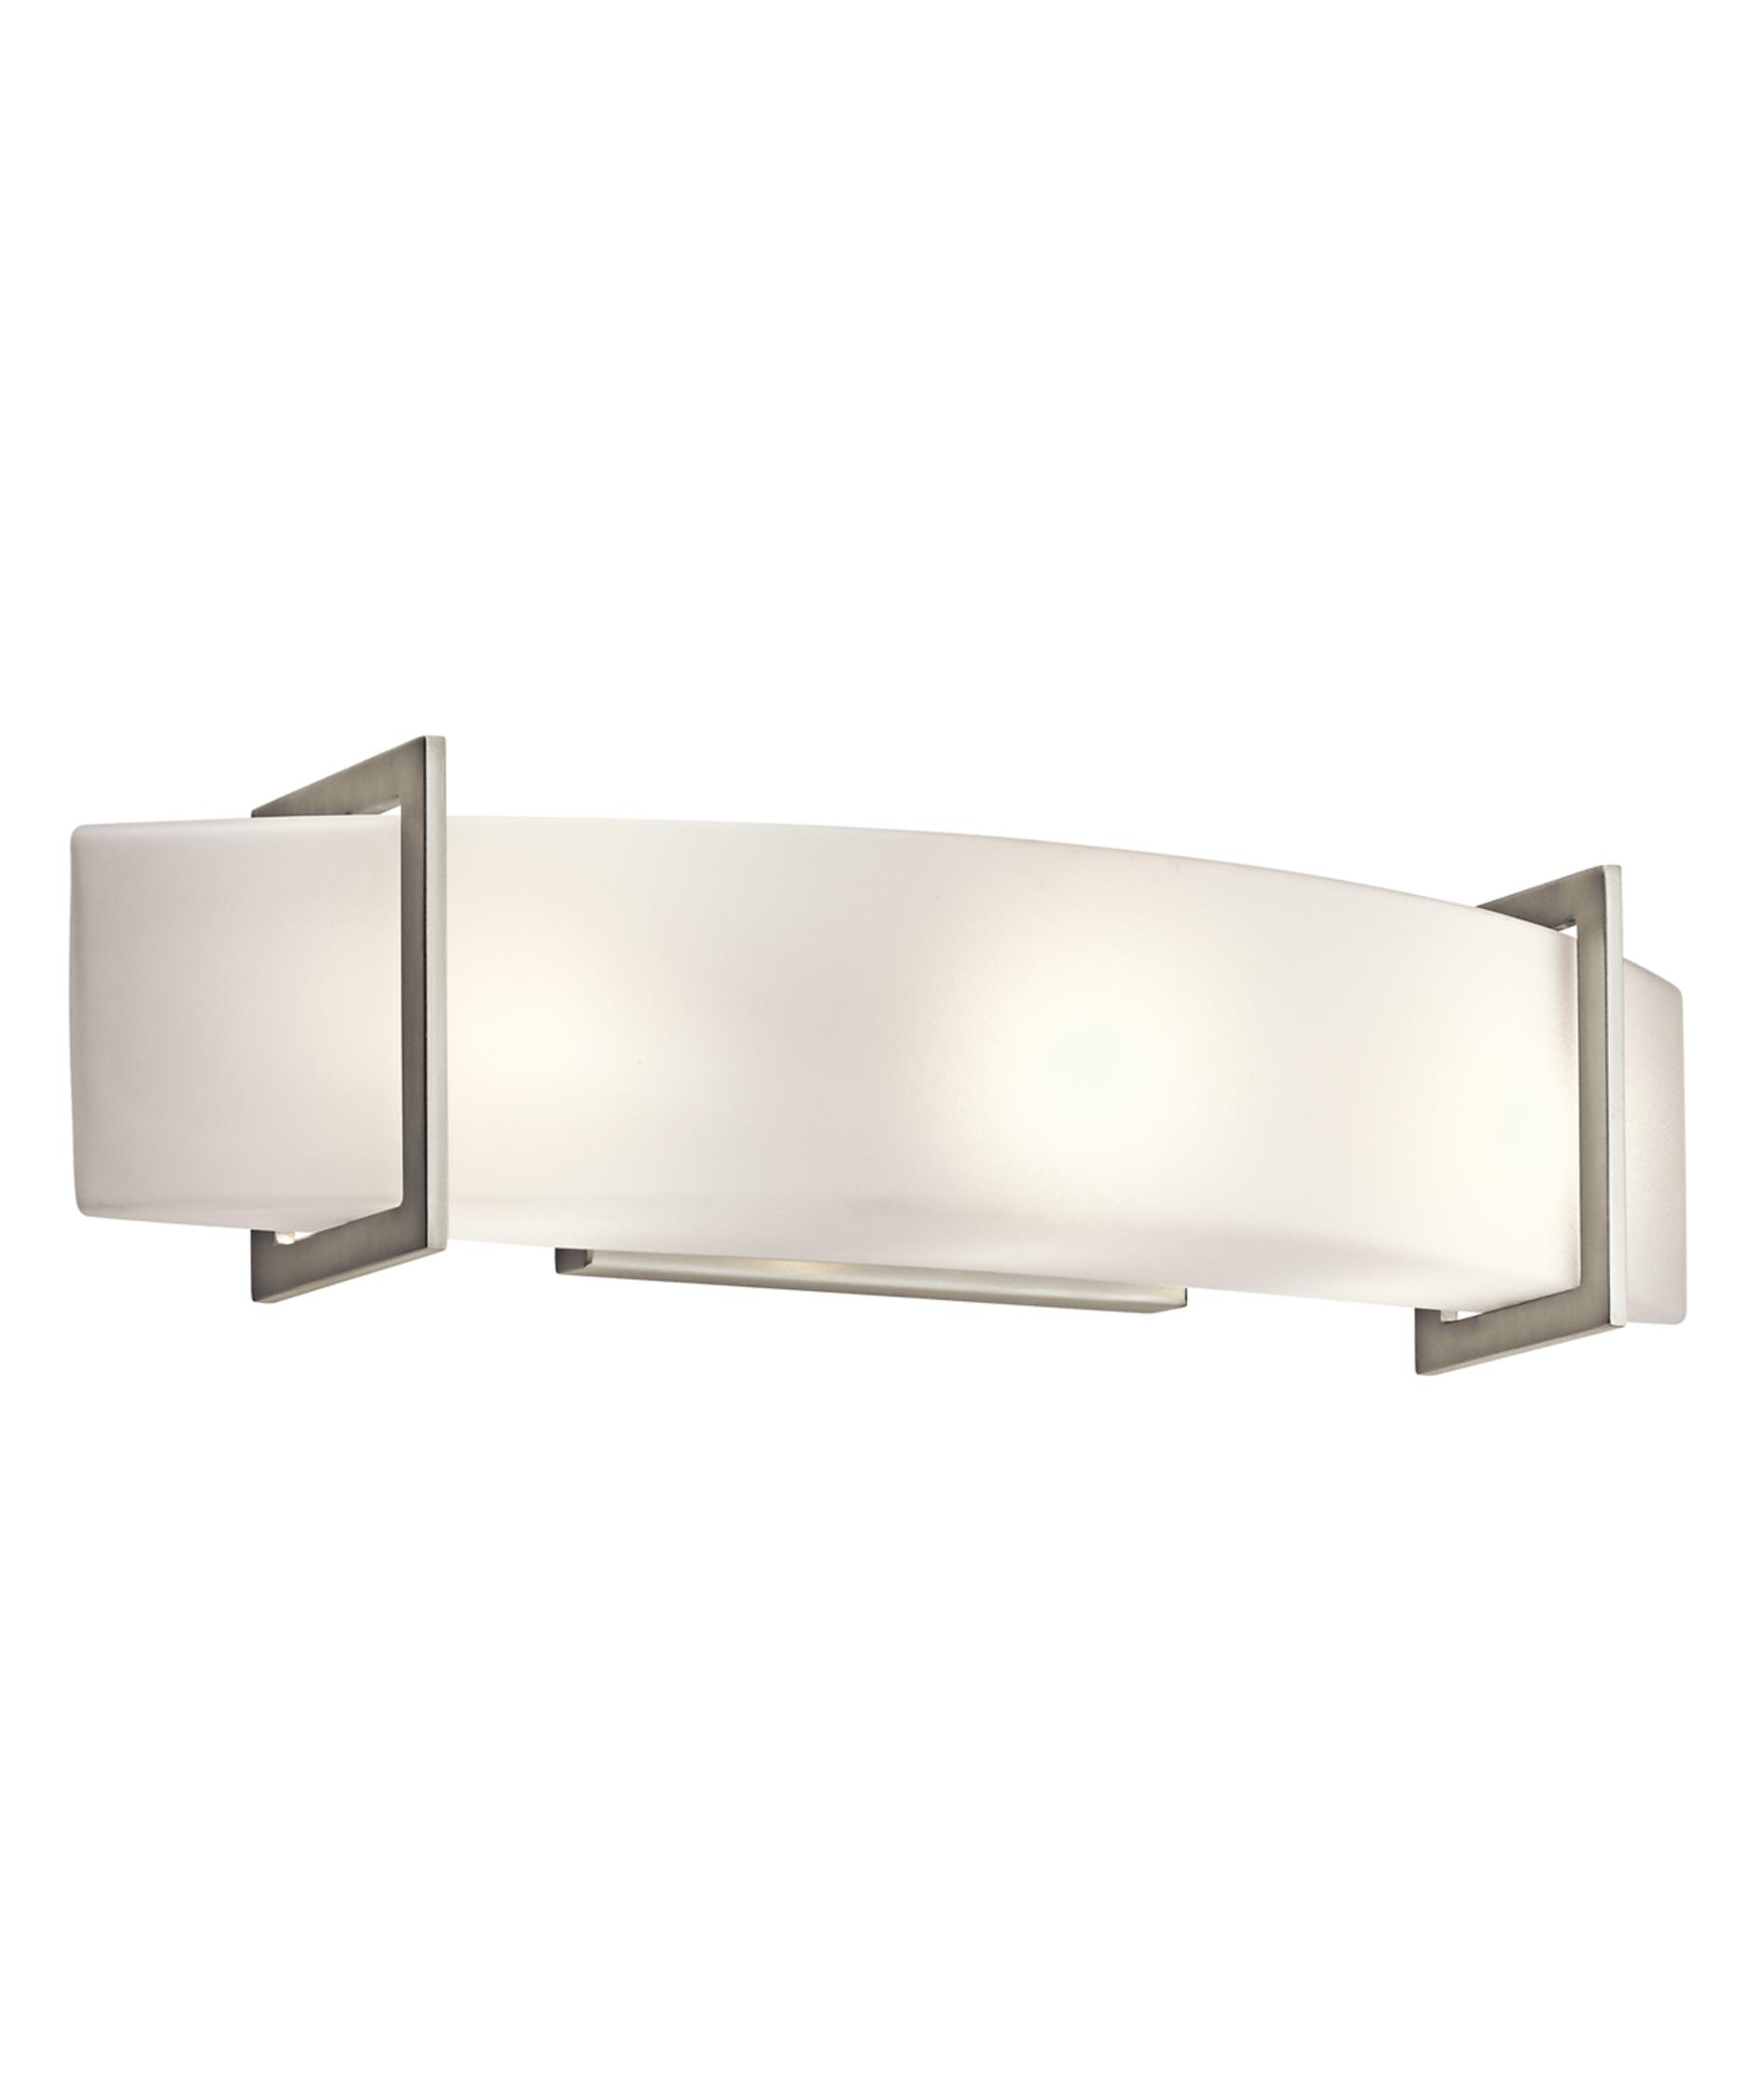 Bathroom Vanity Lights Kichler kichler 45220 crescent view 24 inch wide bath vanity light